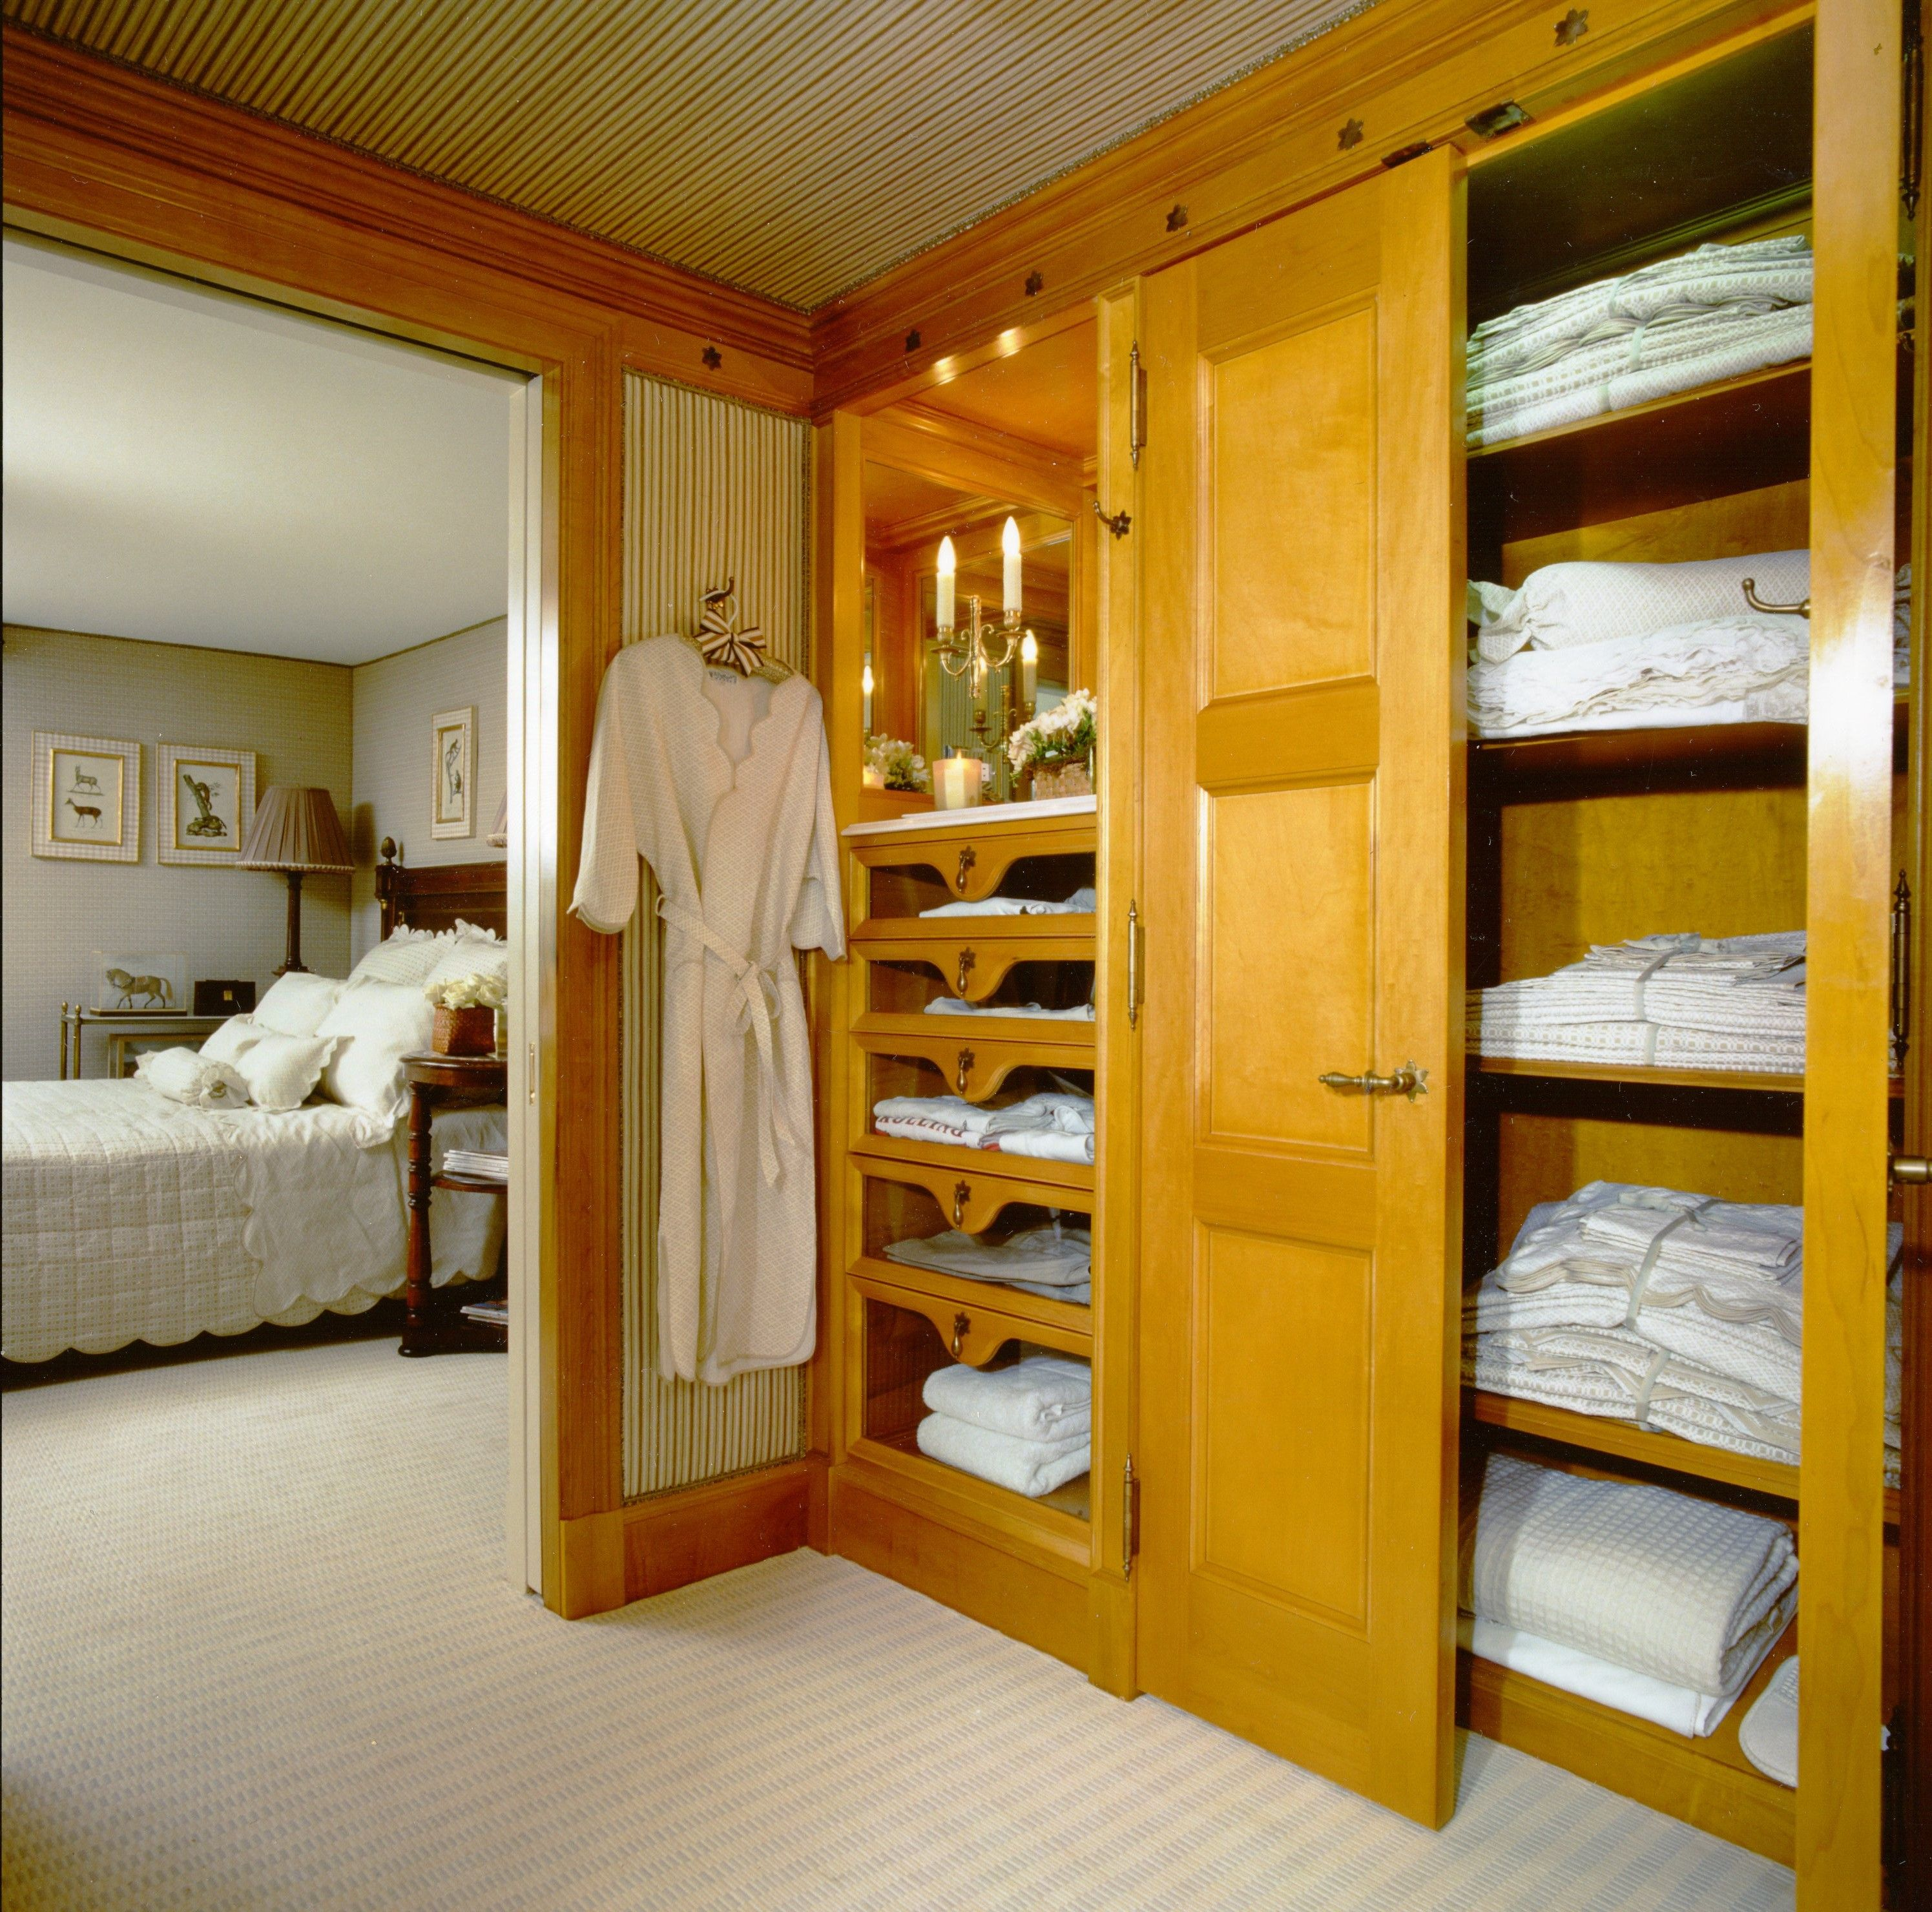 Closet in a guest bedroom, for storage of linens and